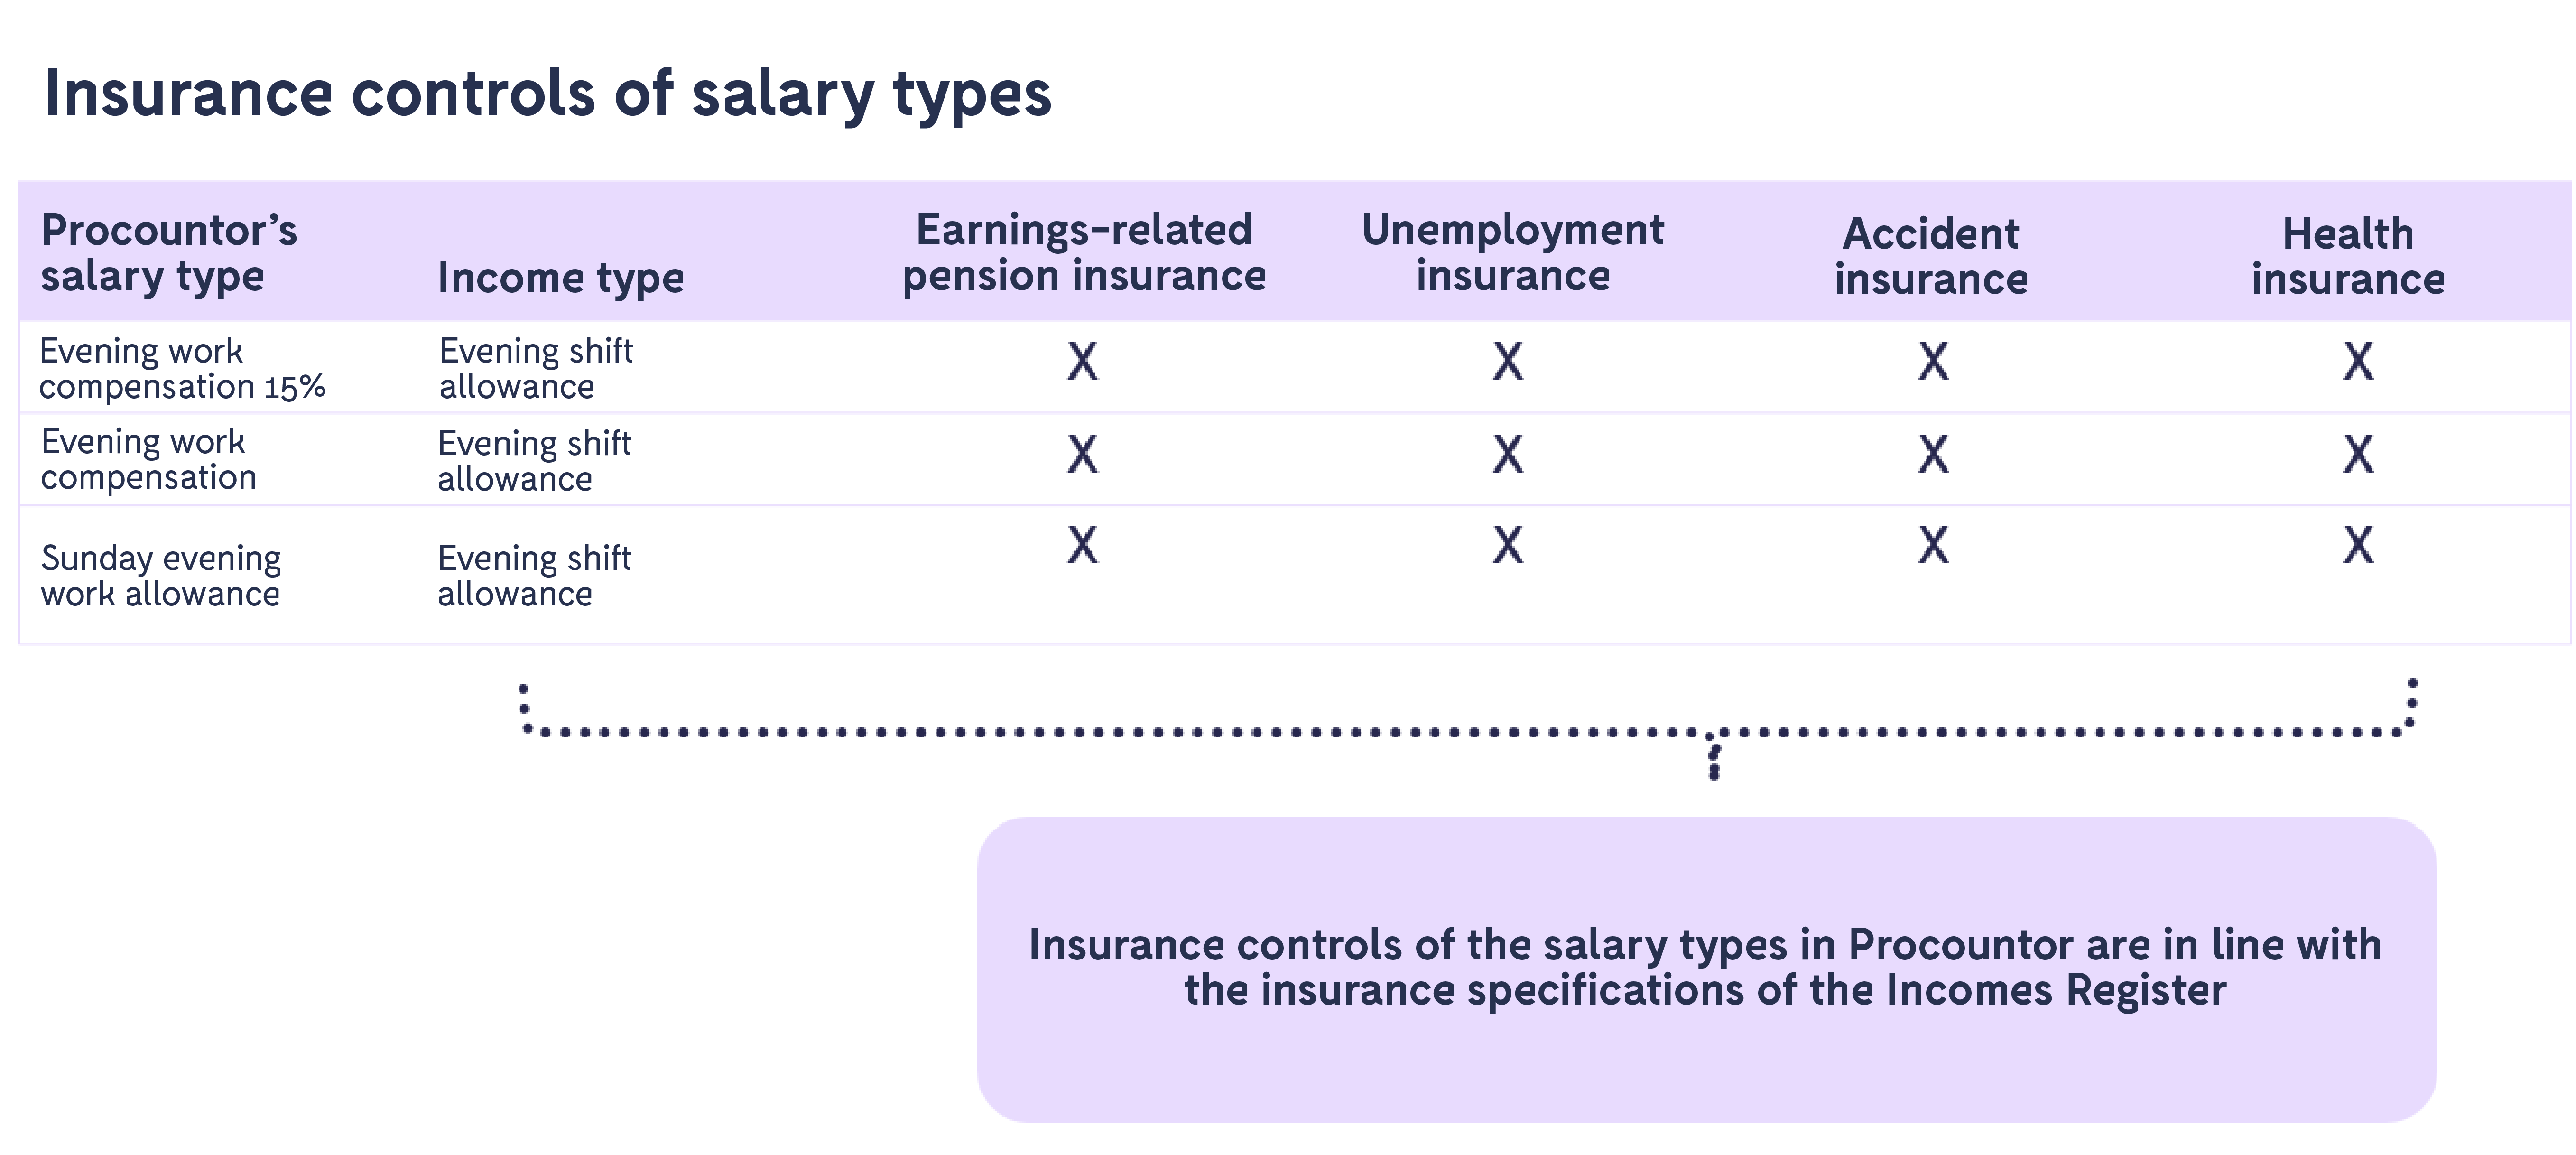 The_controls_of_insurance_with_salary_types_1.png